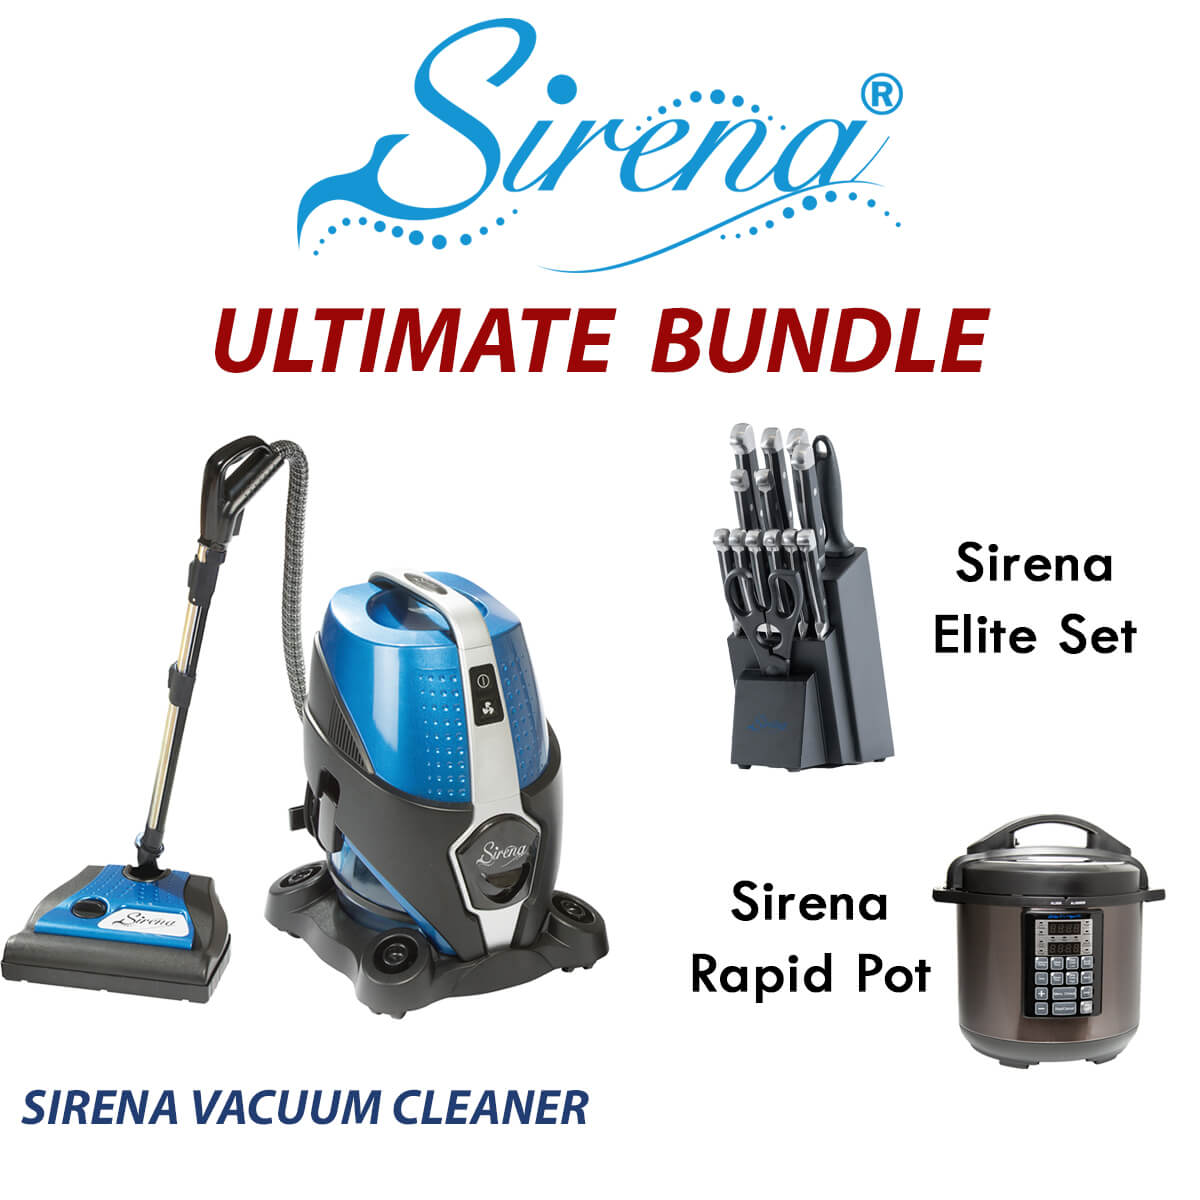 Sirena Ultimate Bundle